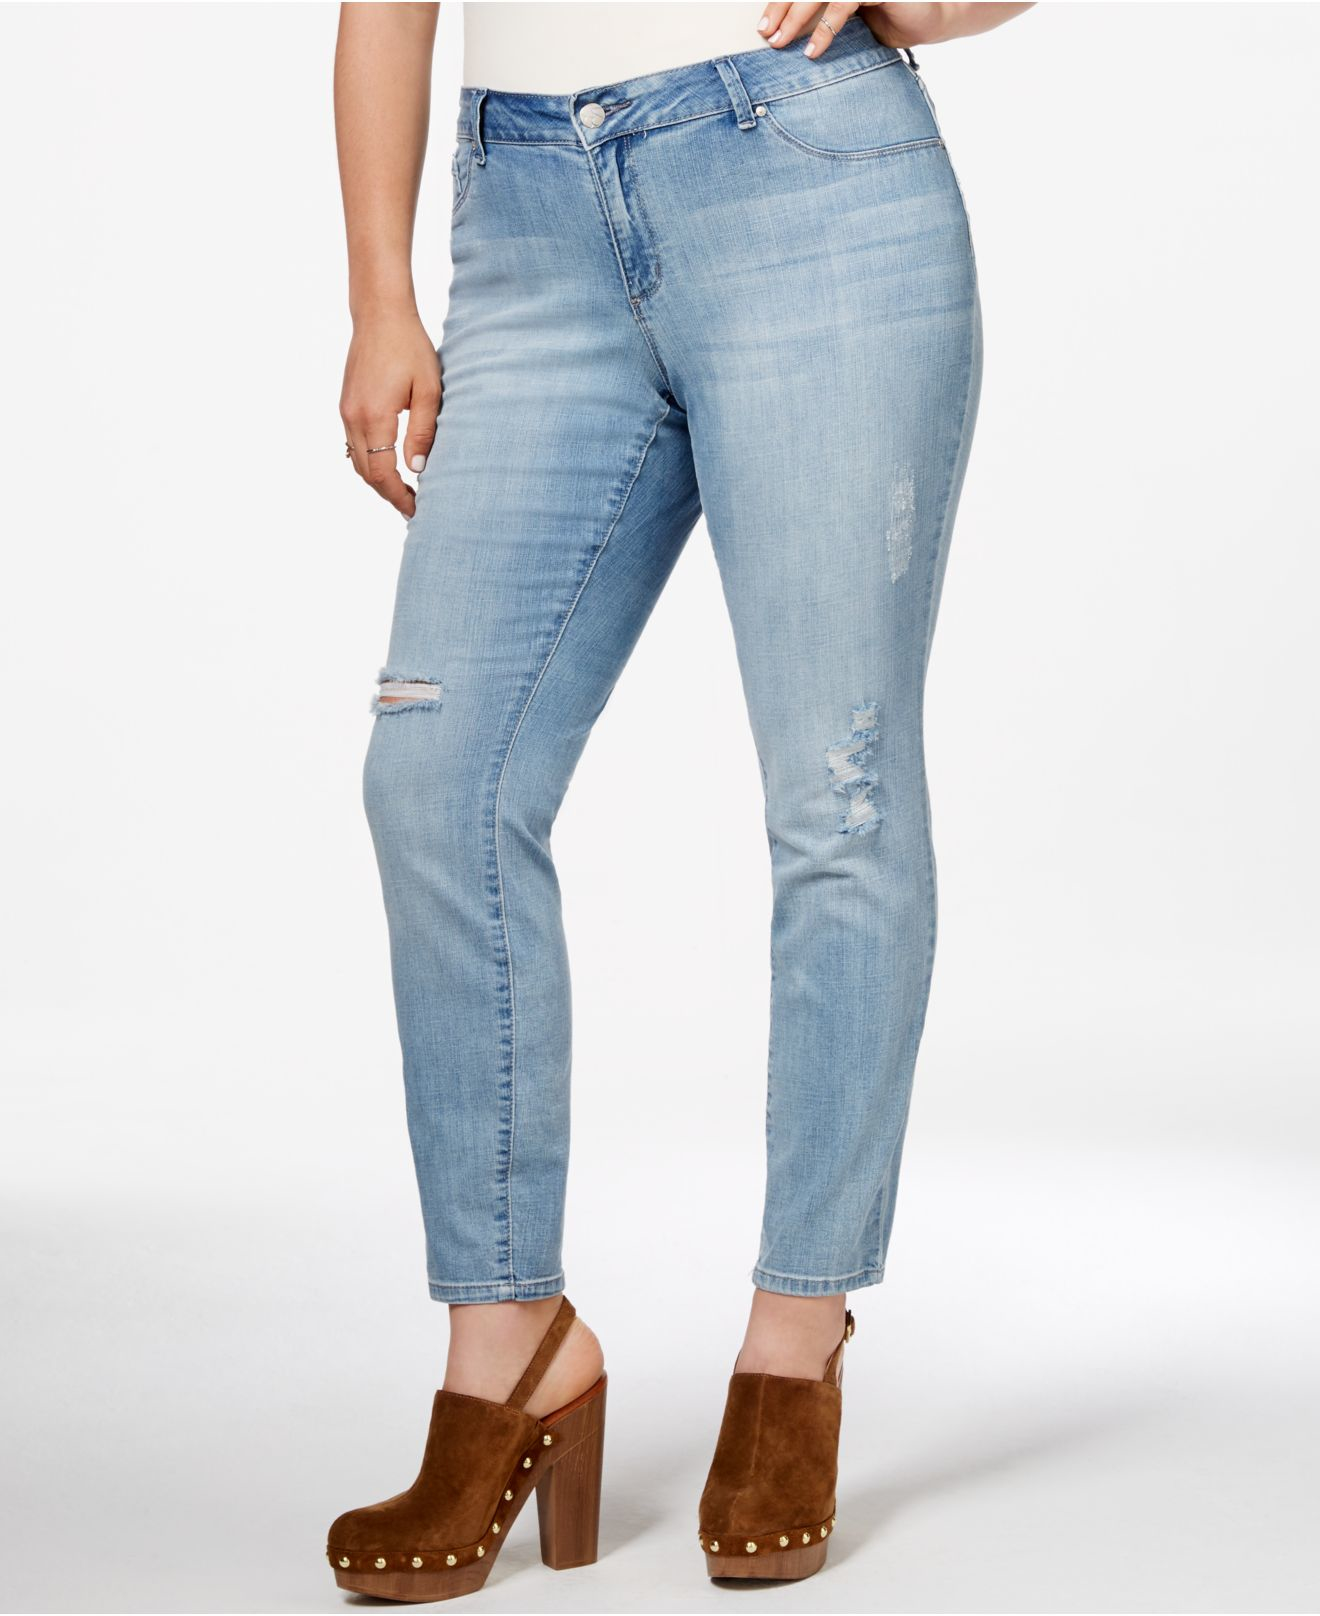 Jessica simpson Plus Size Cropped Ripped Jeans in Blue | Lyst